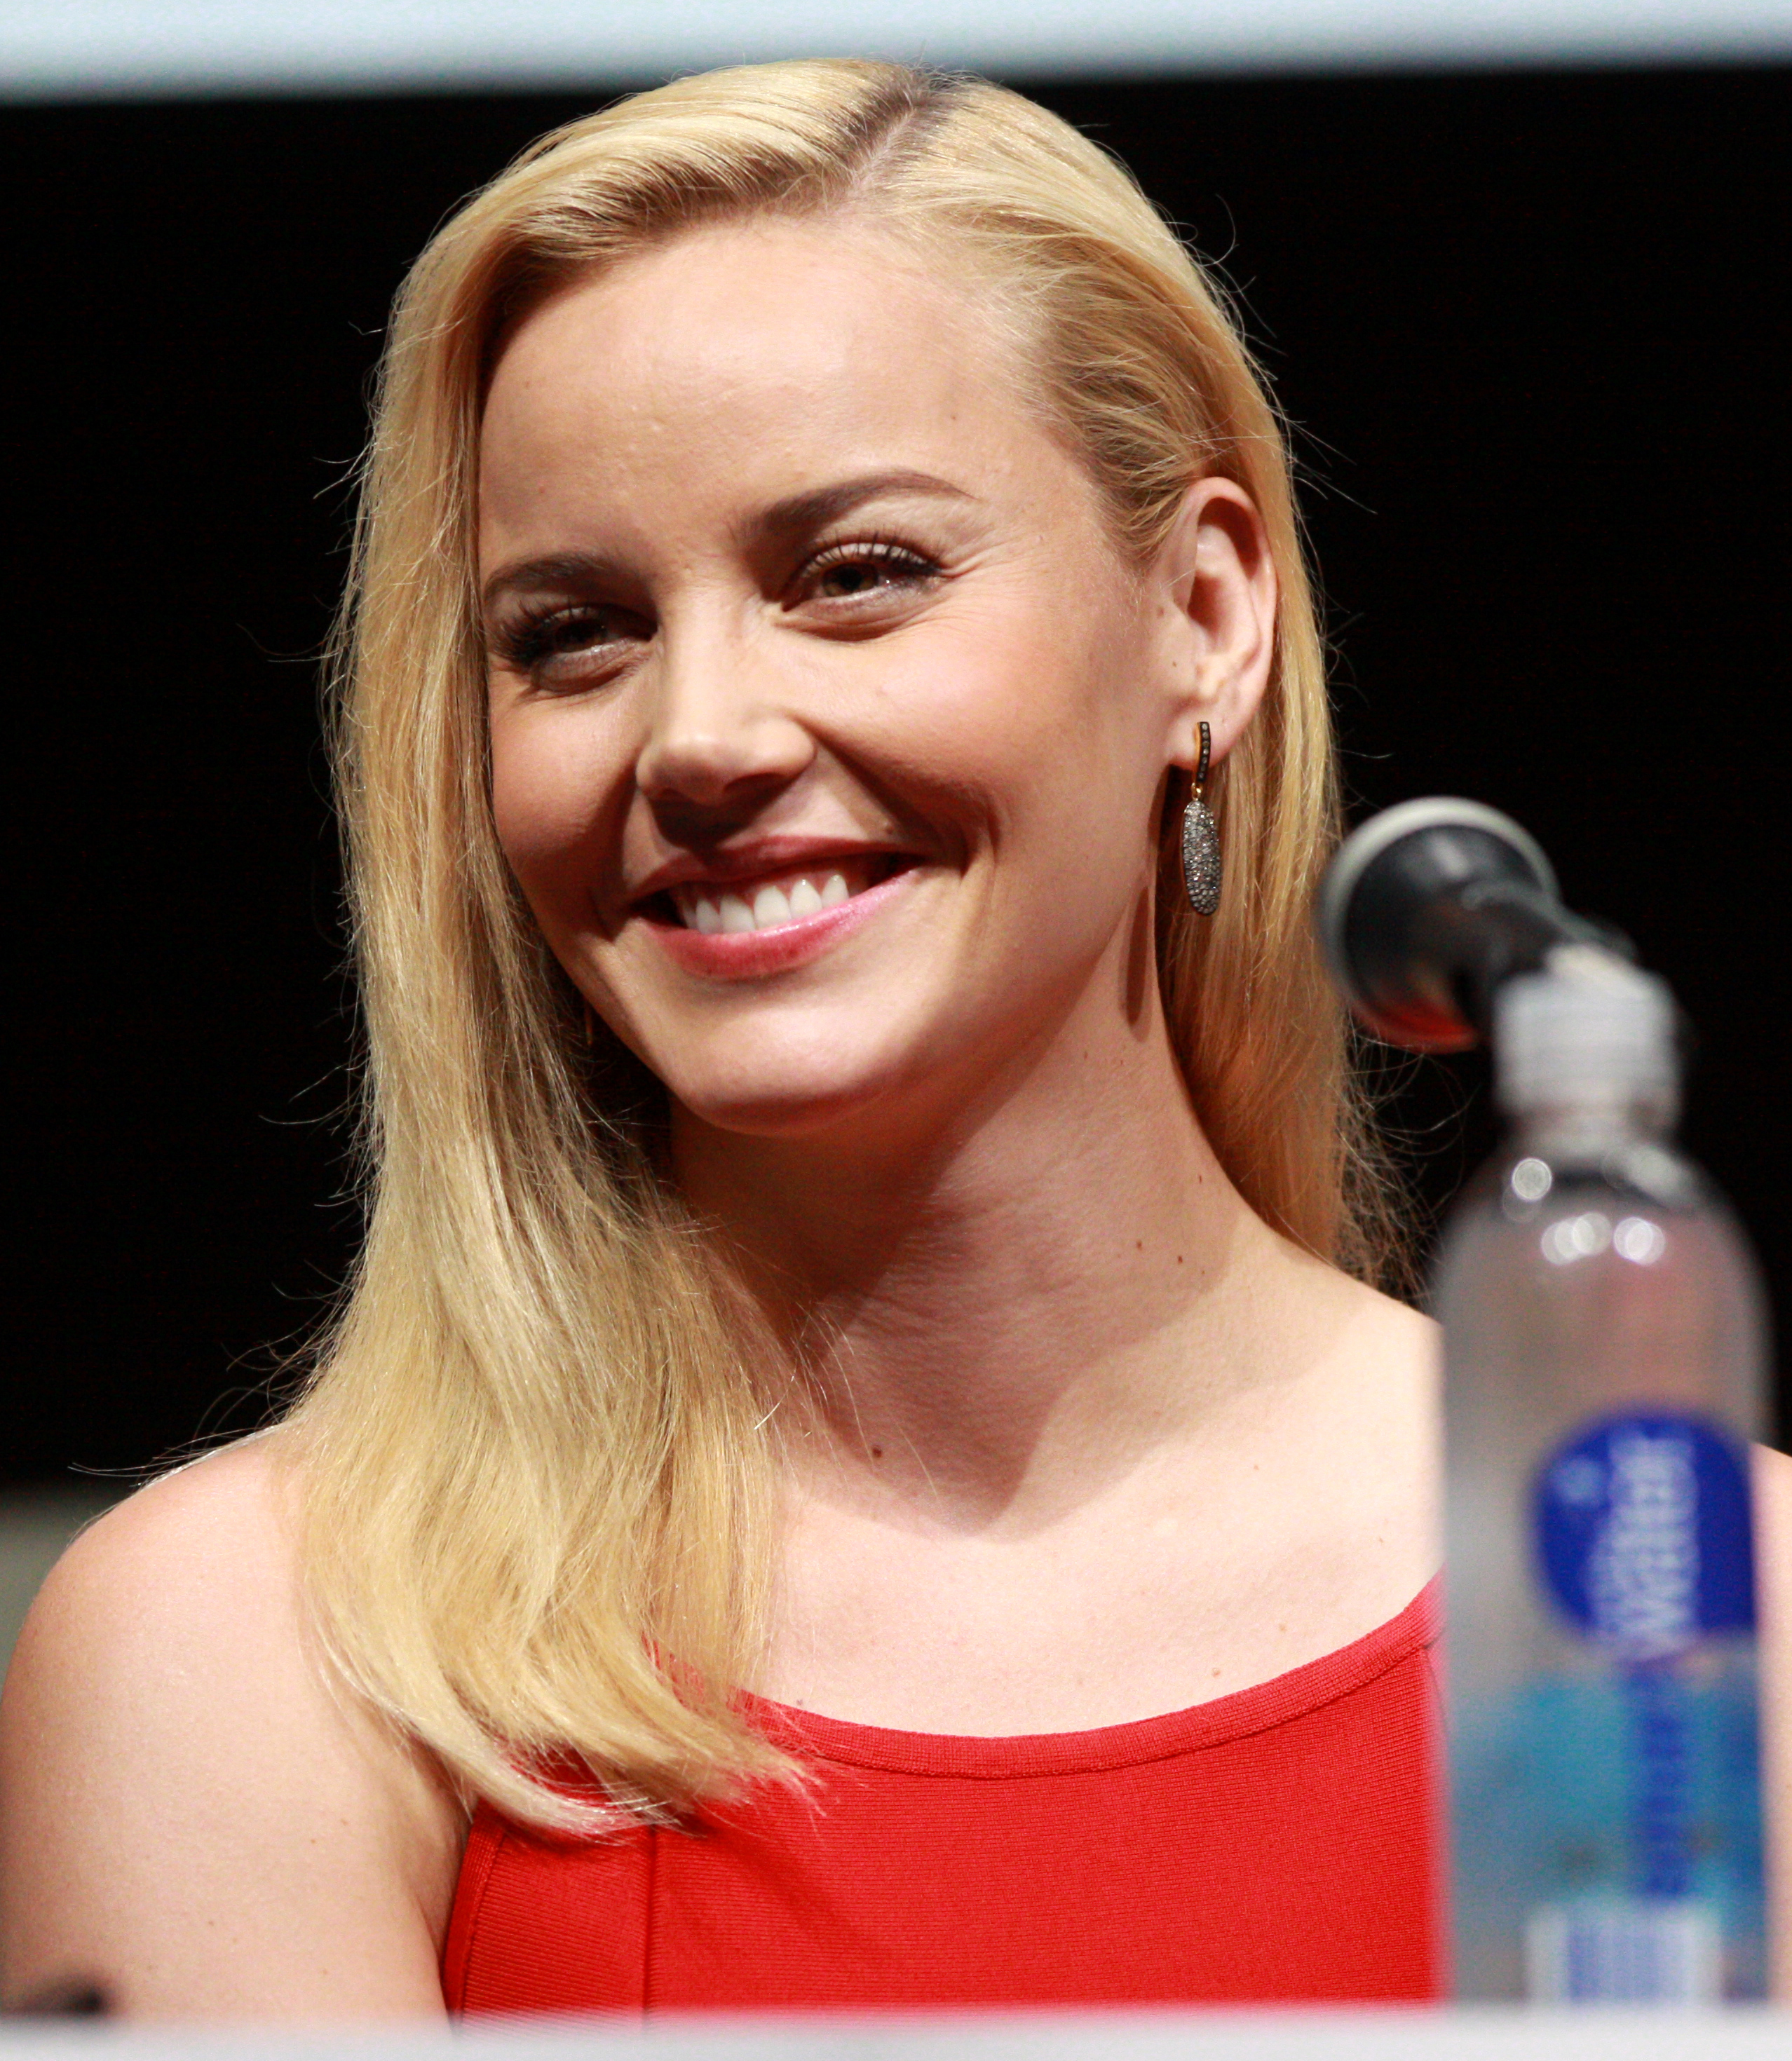 Pic Abbie Cornish nude (85 photos), Tits, Sideboobs, Twitter, butt 2019